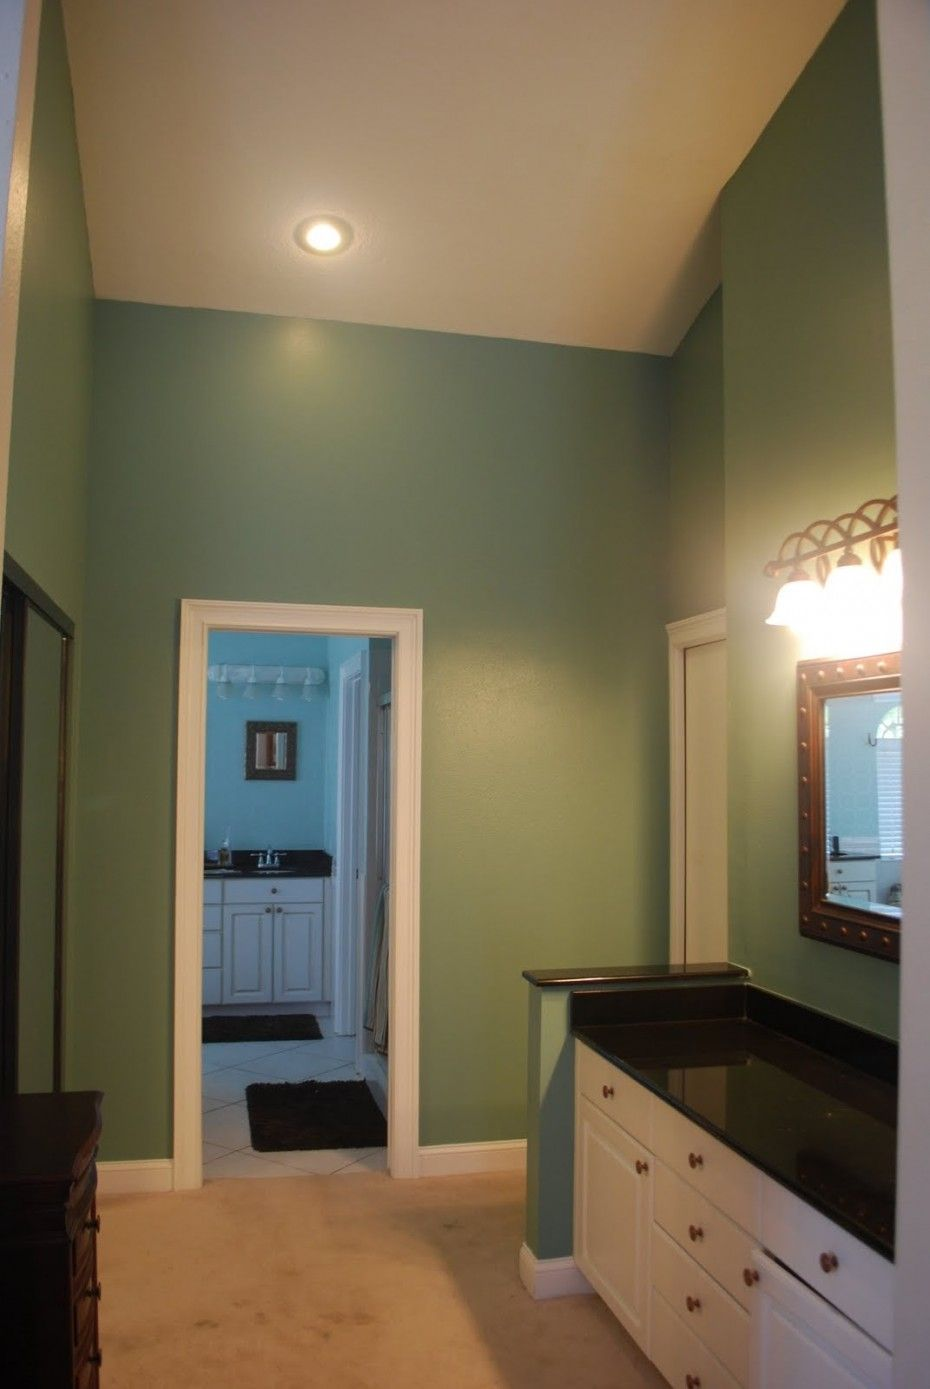 Bathroom paint colors ideas warm green bathroom painting for Bathroom color ideas blue